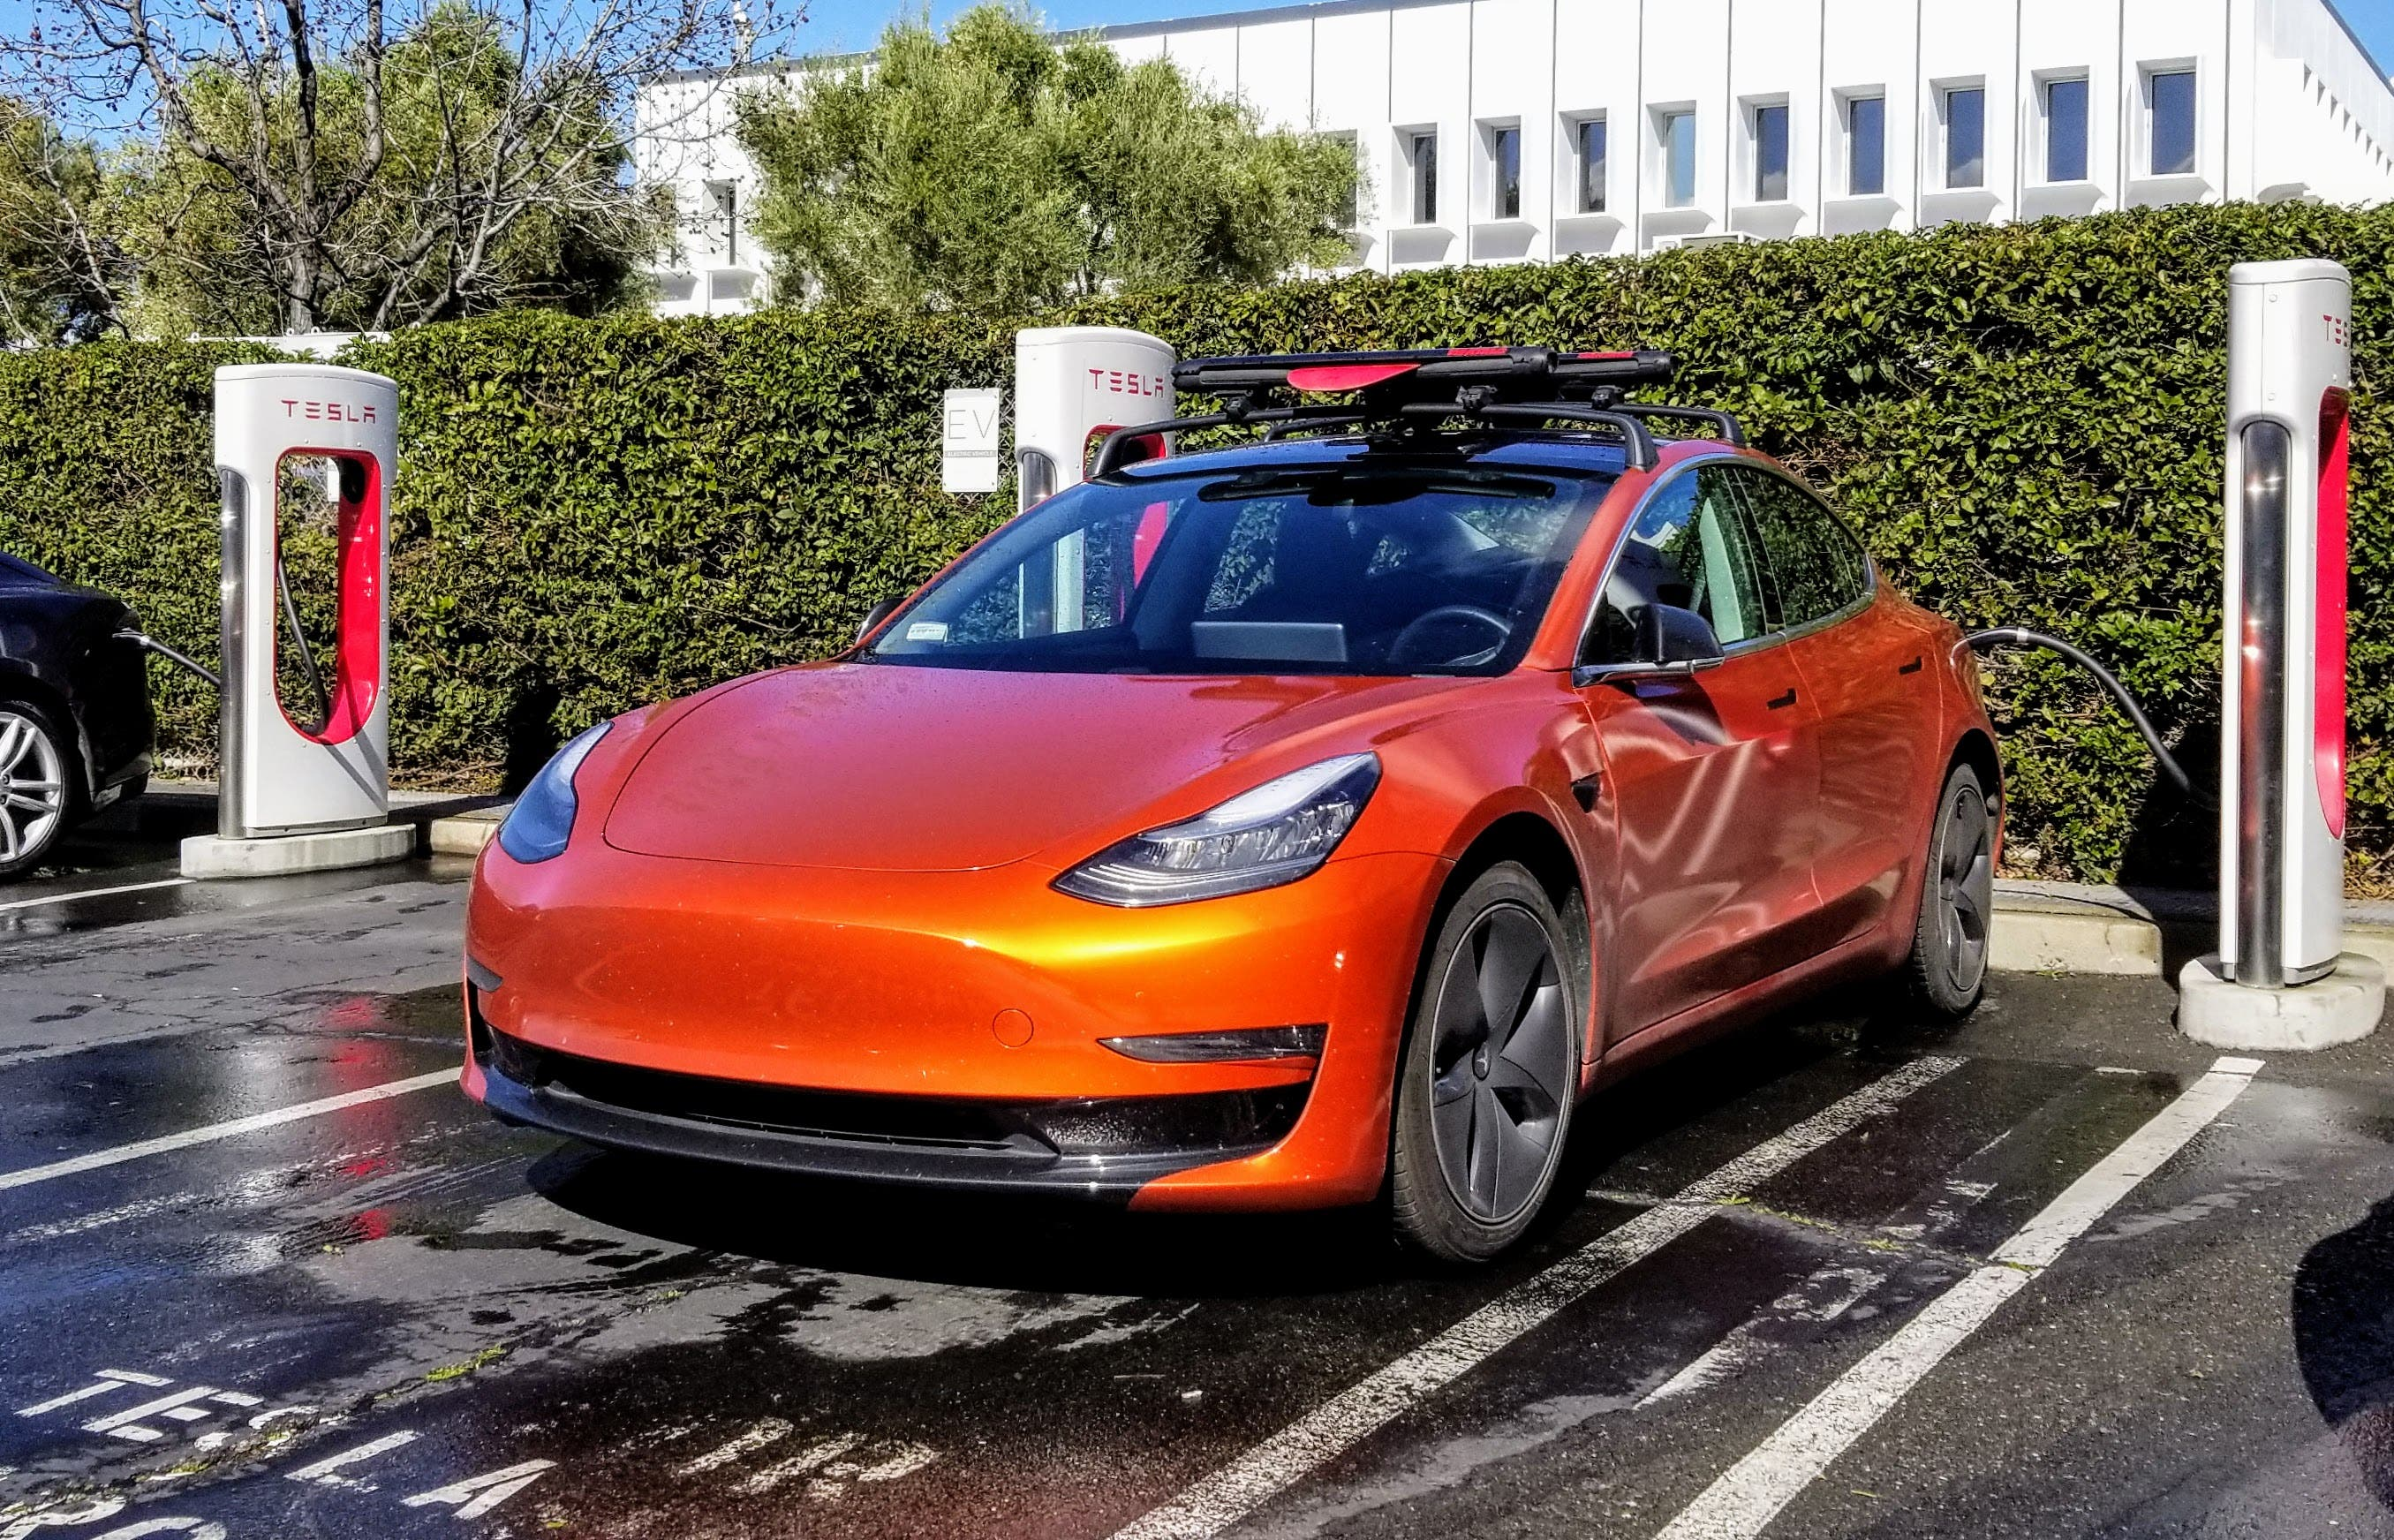 Non-Stop Engineering & Innovation Are The Lifeblood Of Tesla